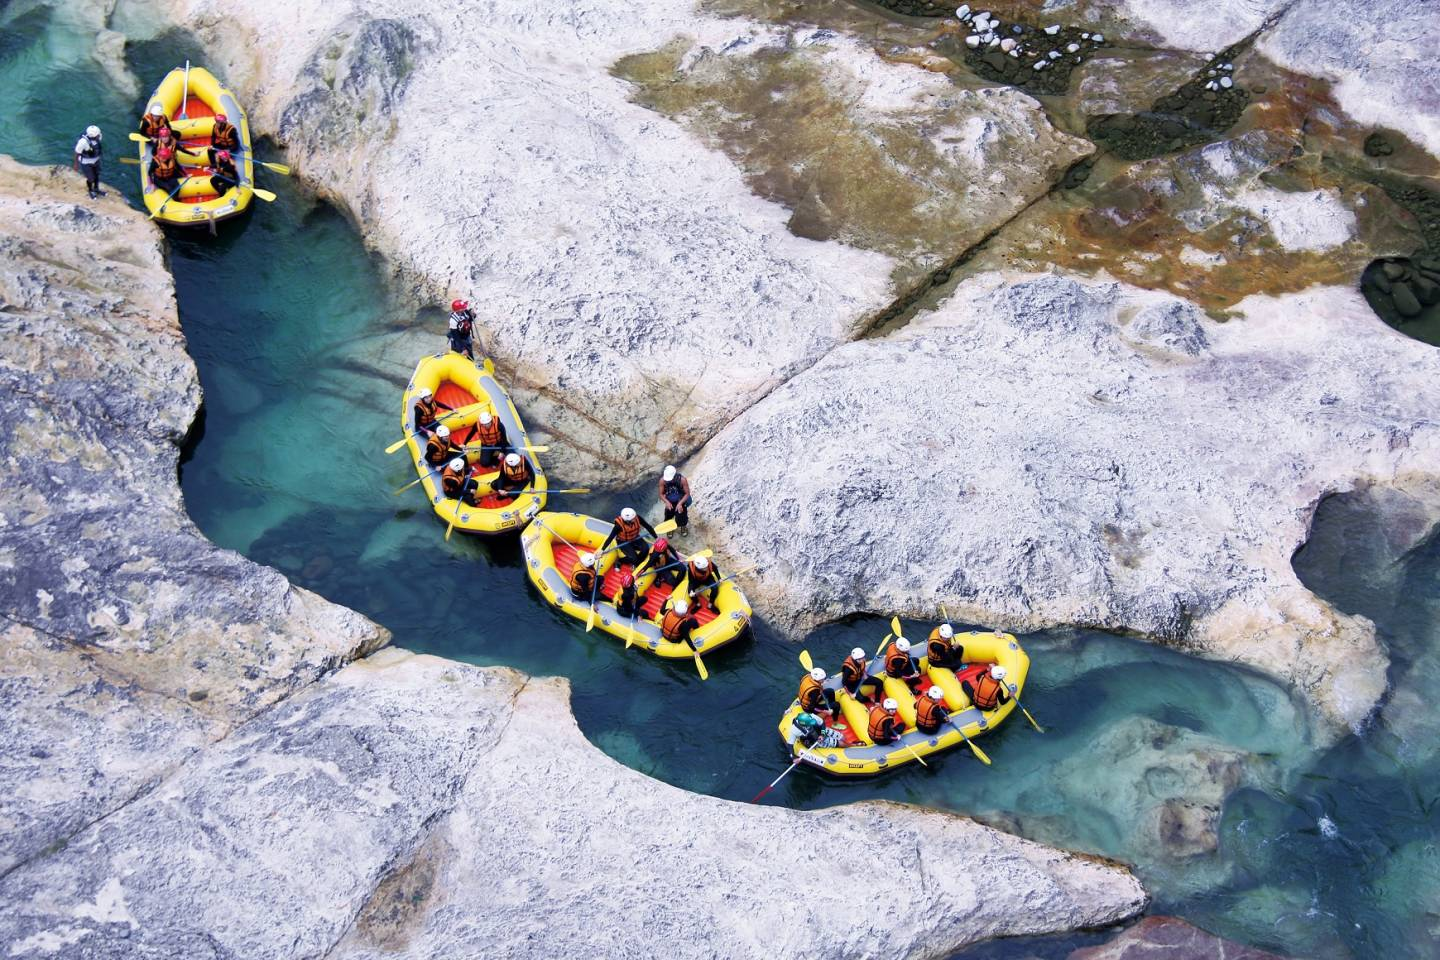 Wildwasser Rafting in Japan